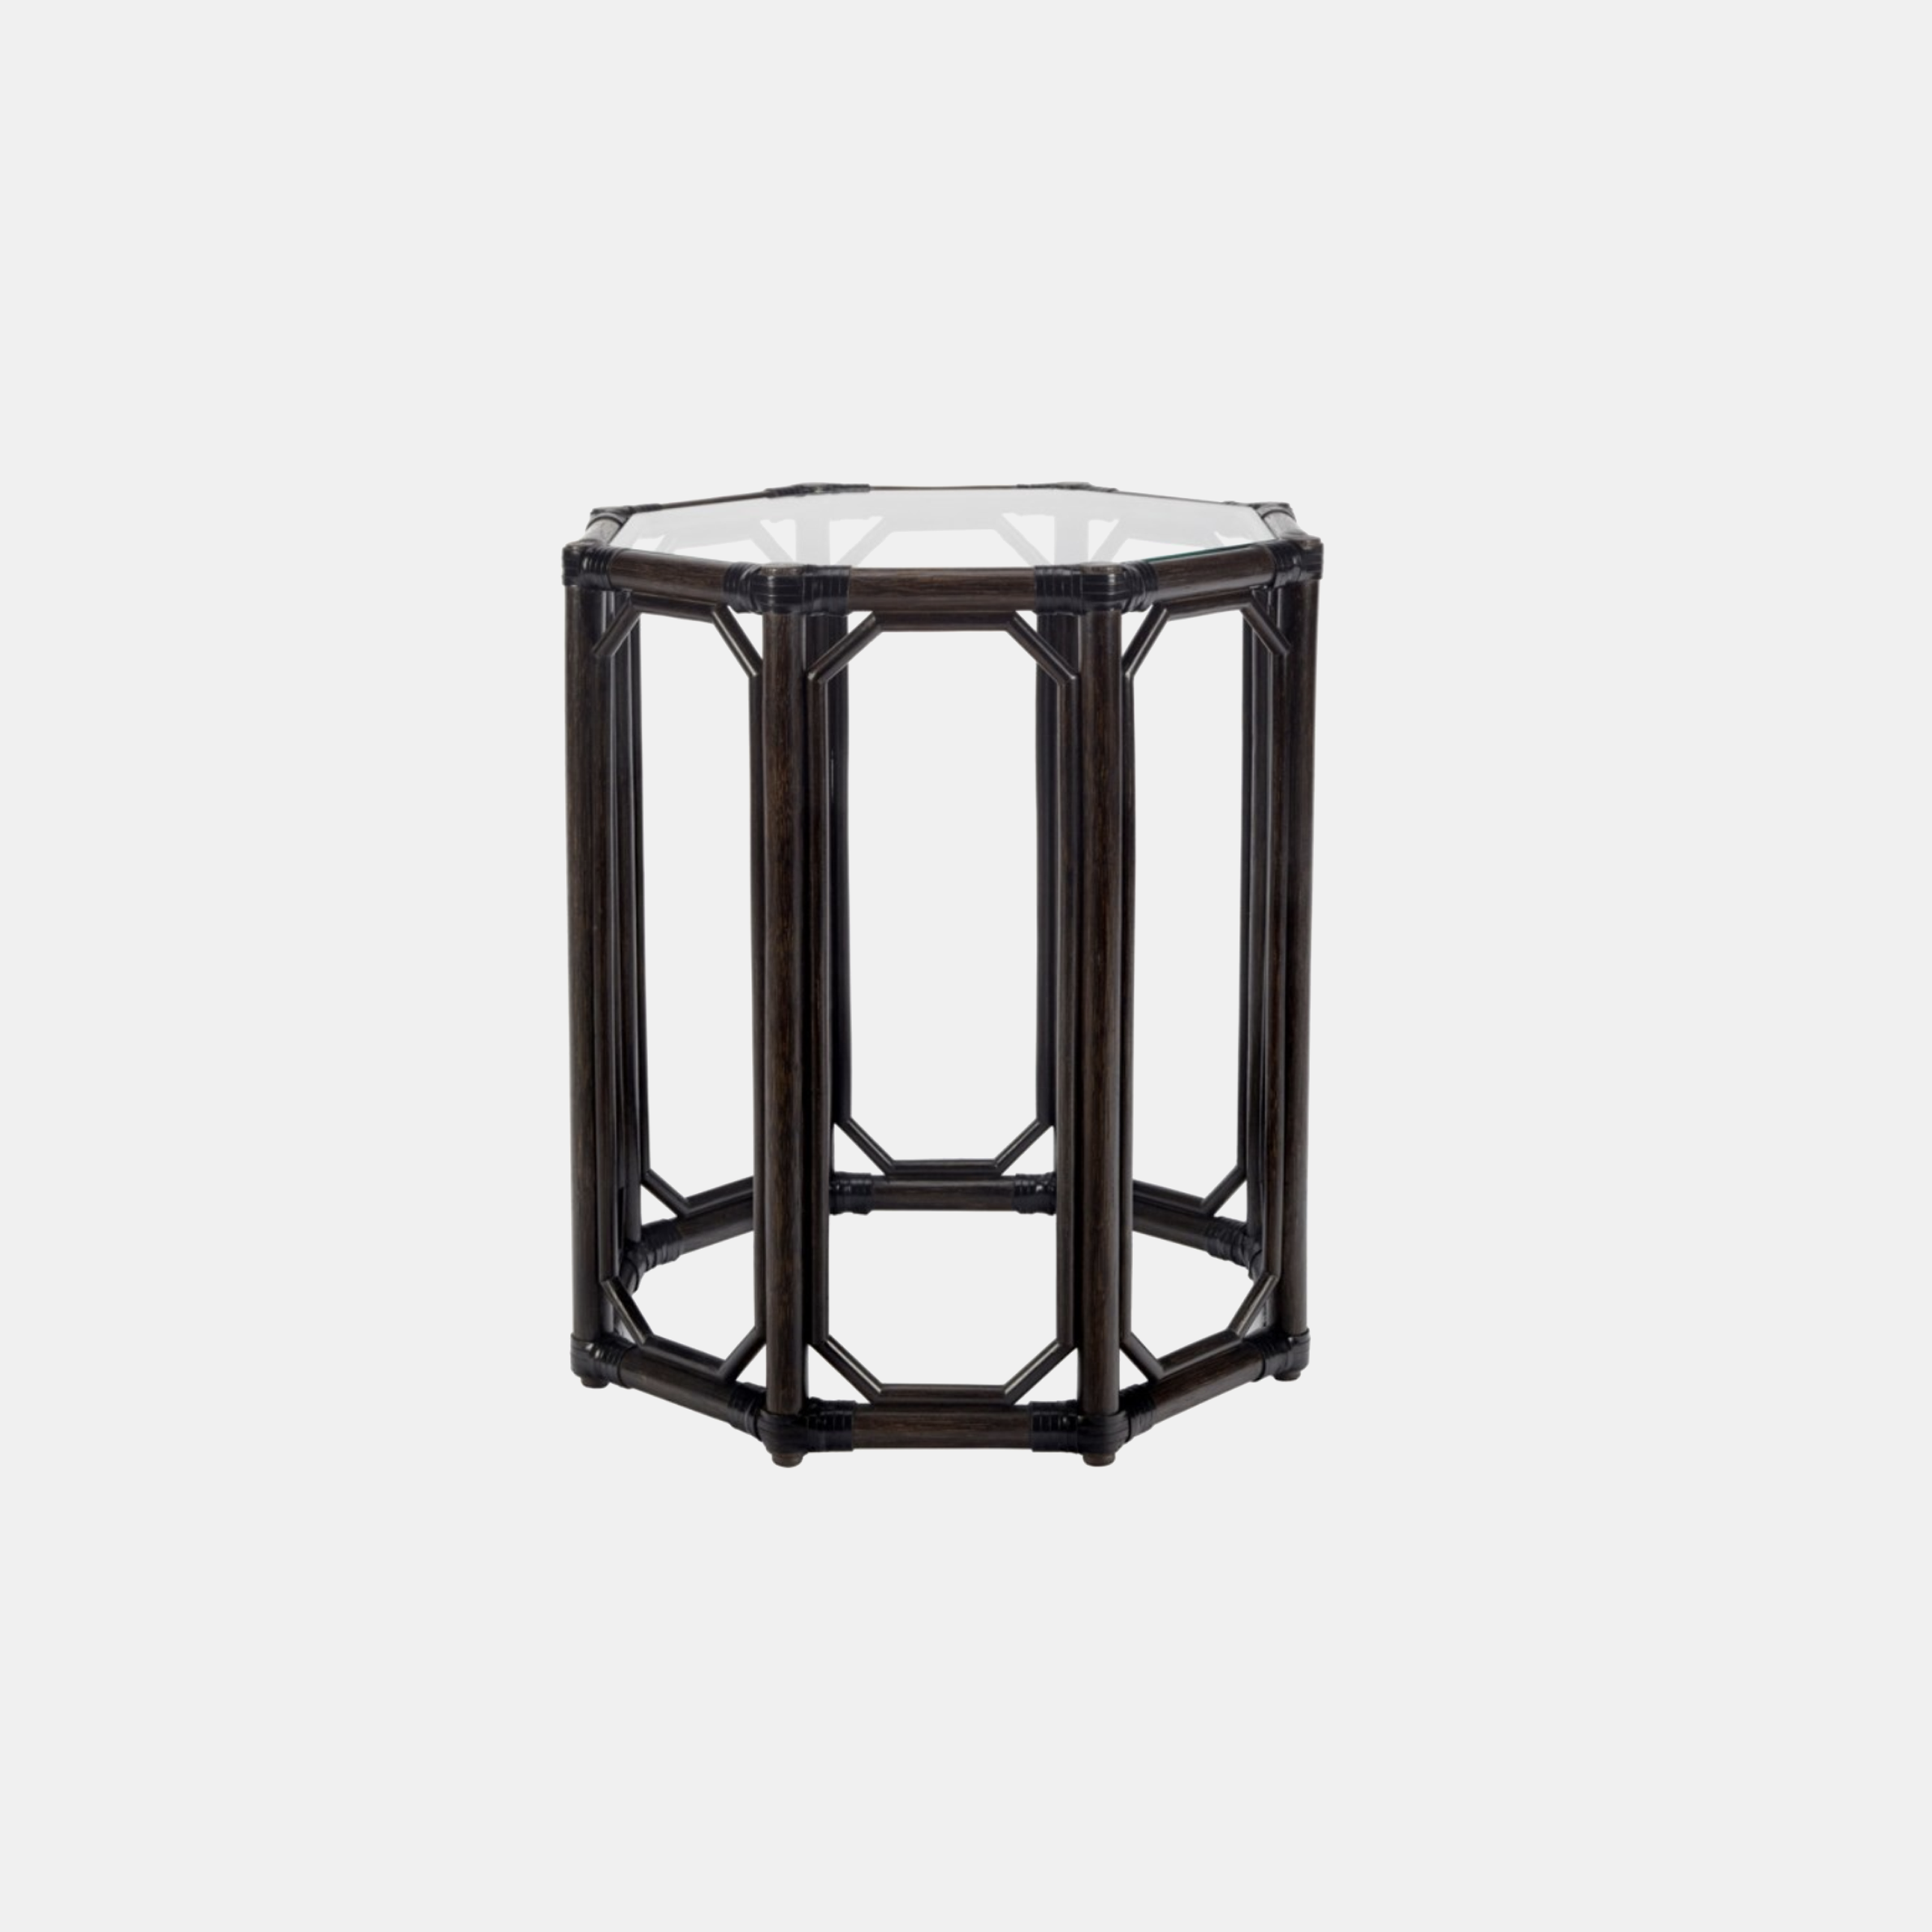 """Regeant Octagonal Side Table  19.5"""" round x 22"""" h Available in clove (shown), cinnamon, nutmeg, and white. Also available as square side table. SKU4456SLM"""